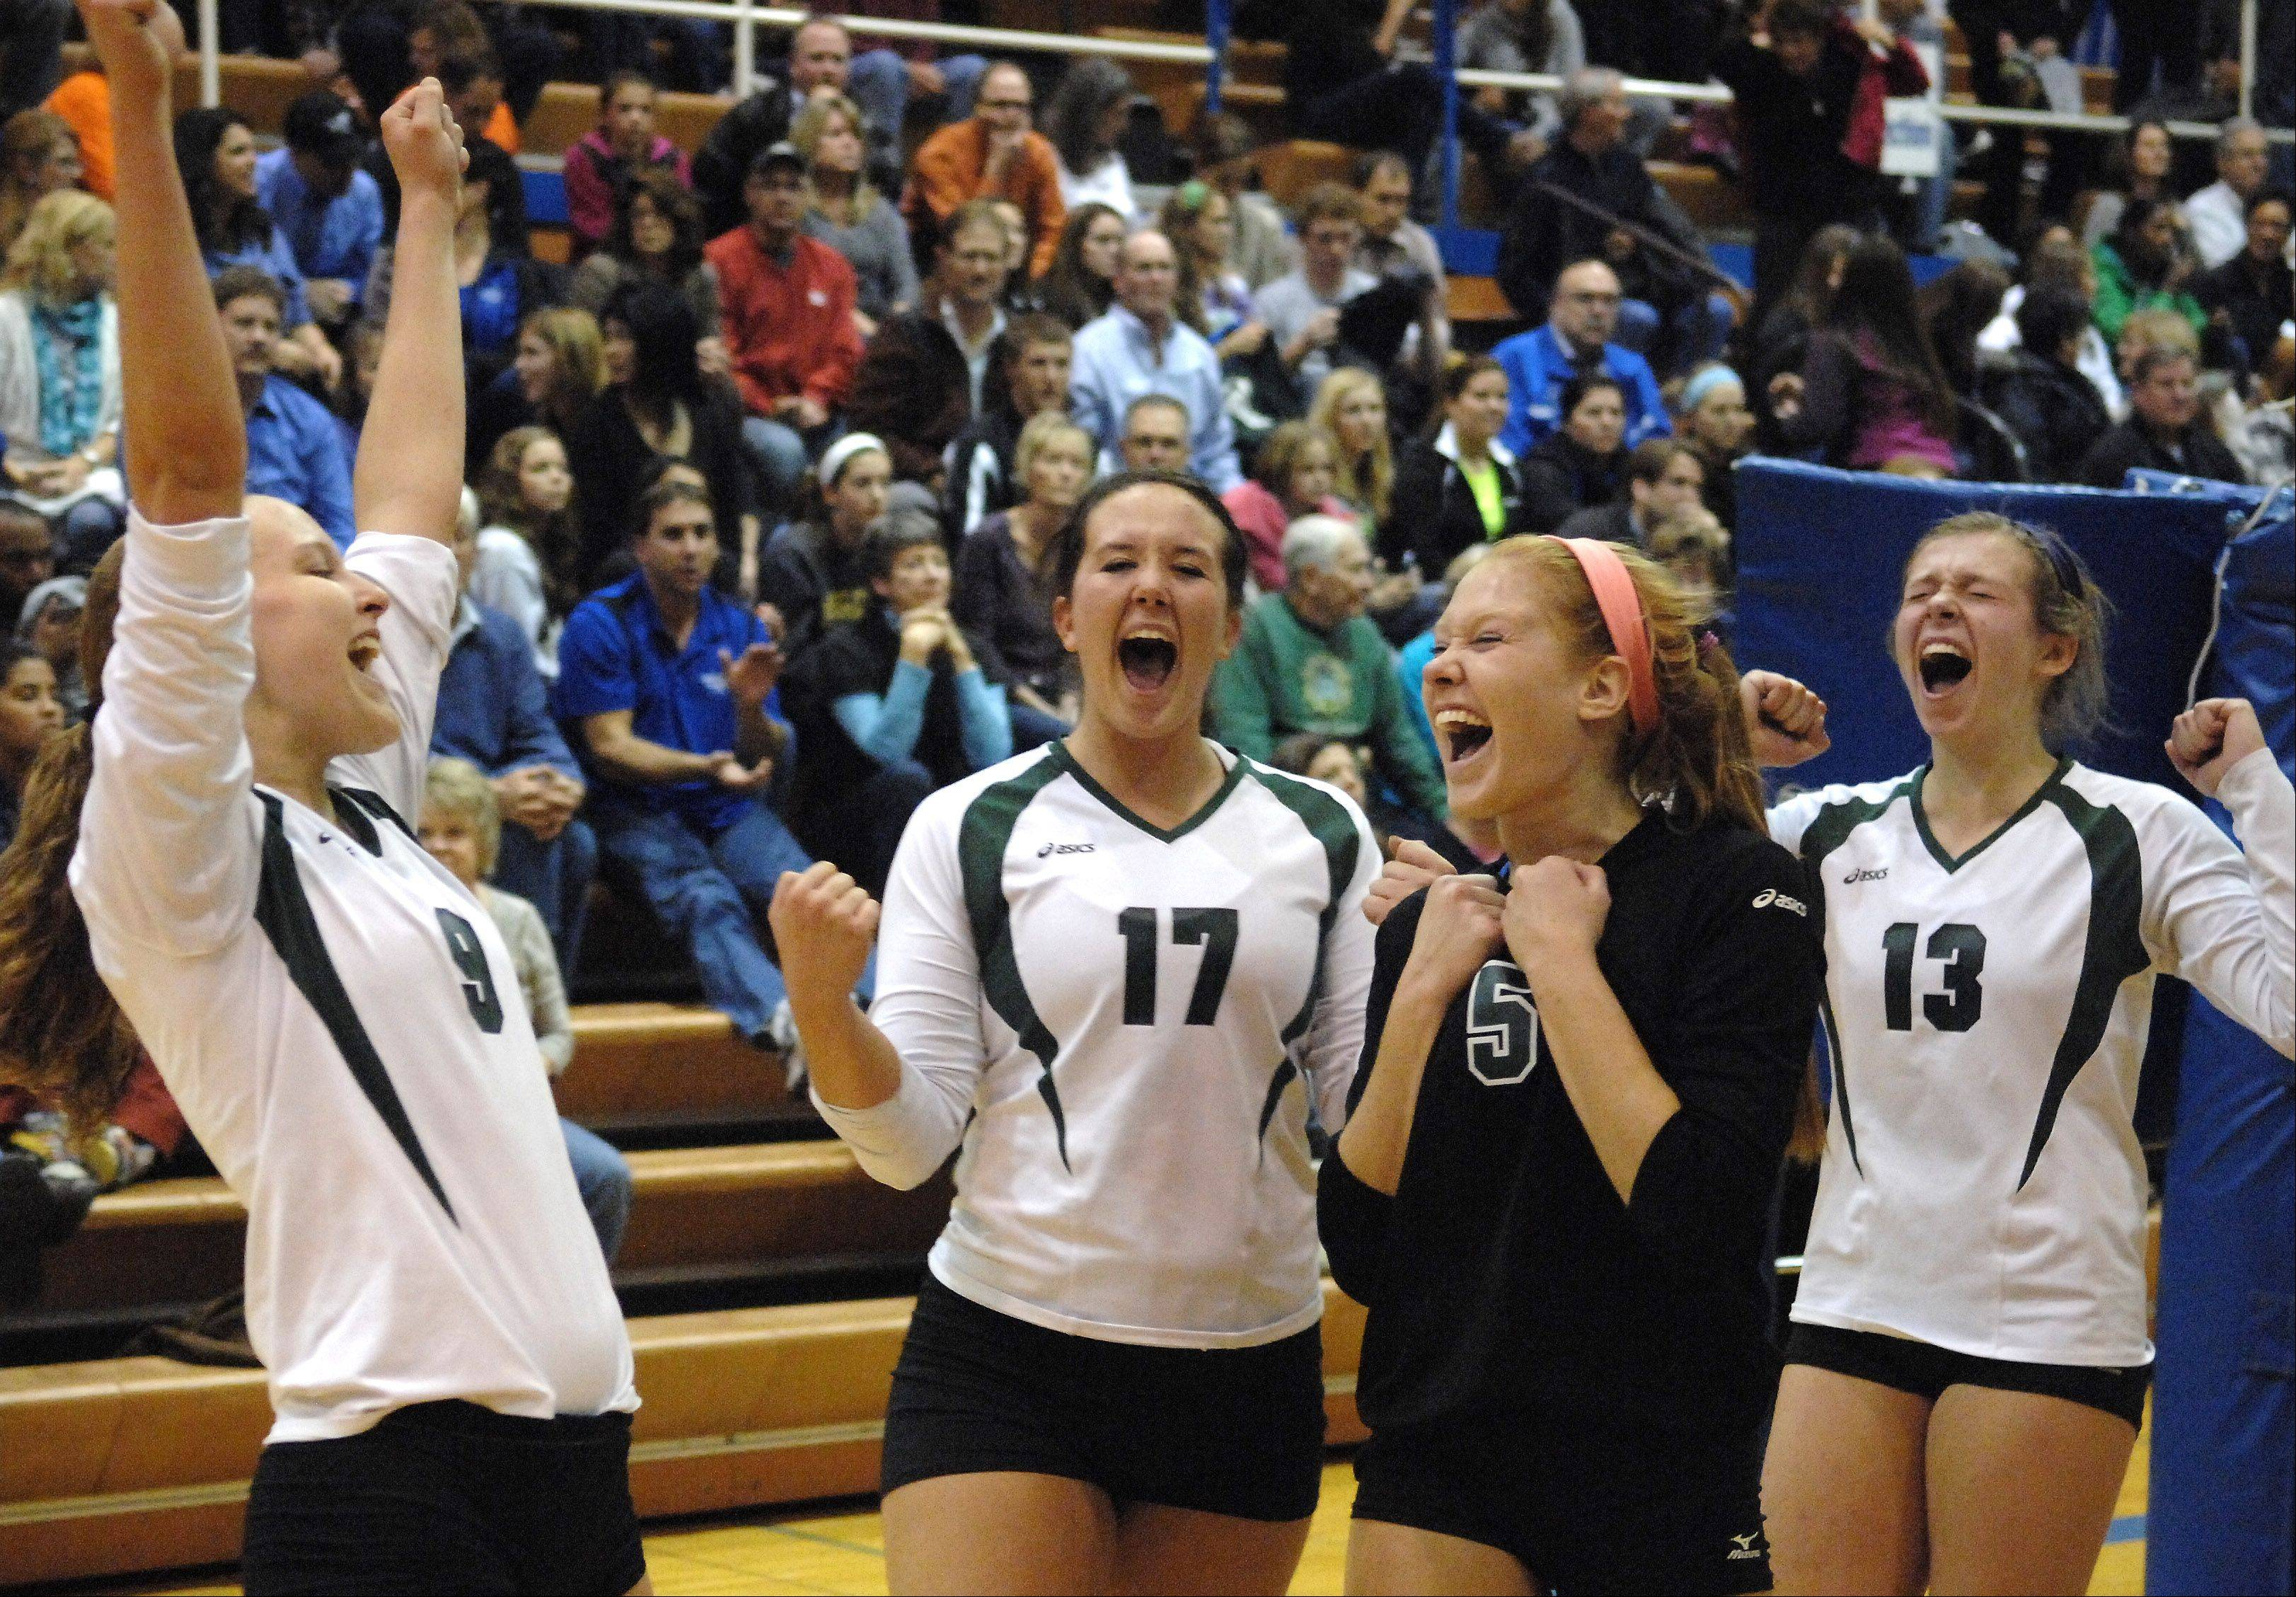 Glenbard West players, from left, Amanda Perry, Caroline Jenkins, Meg Demaar and Megan Wagner celebrate their win over St. Charles North during Tuesday�s sectional semifinals at Larkin High School in Elgin.